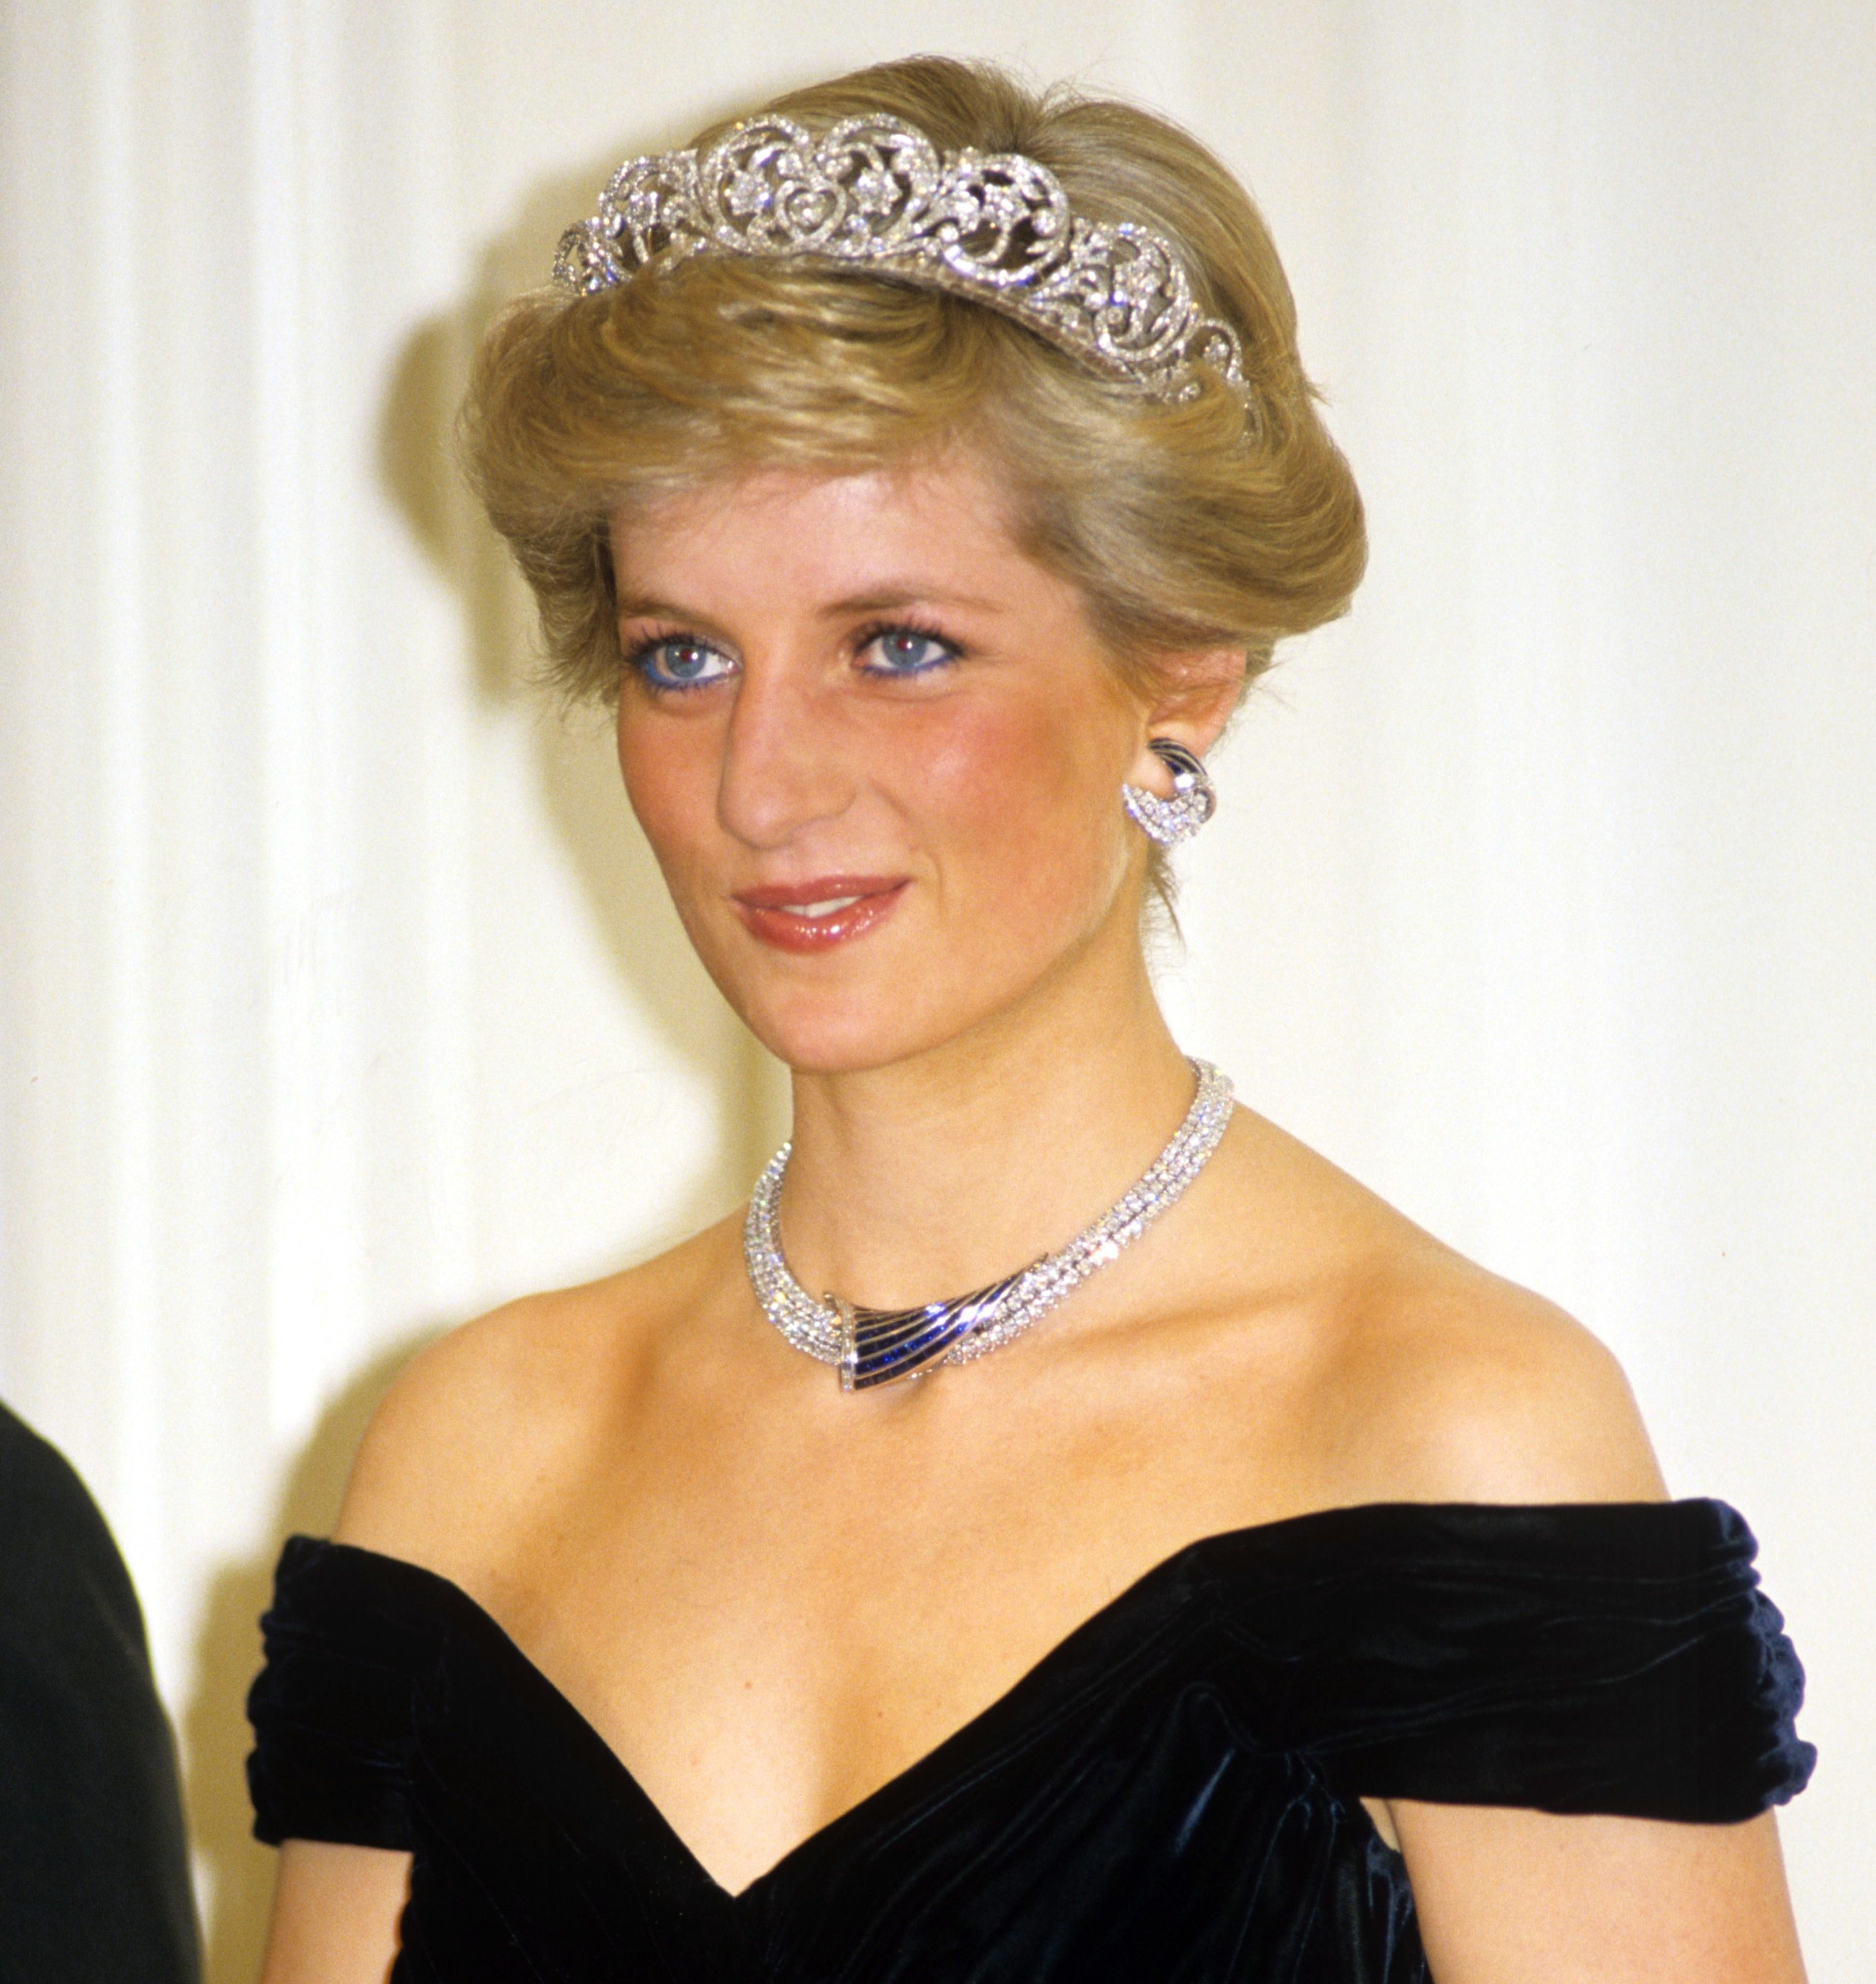 Mandatory Credit: Photo by David Levenson/Shutterstock (139864b) PRINCESS DIANA IN GERMANY 1987 British Royal tour of West Germany - Nov 1987